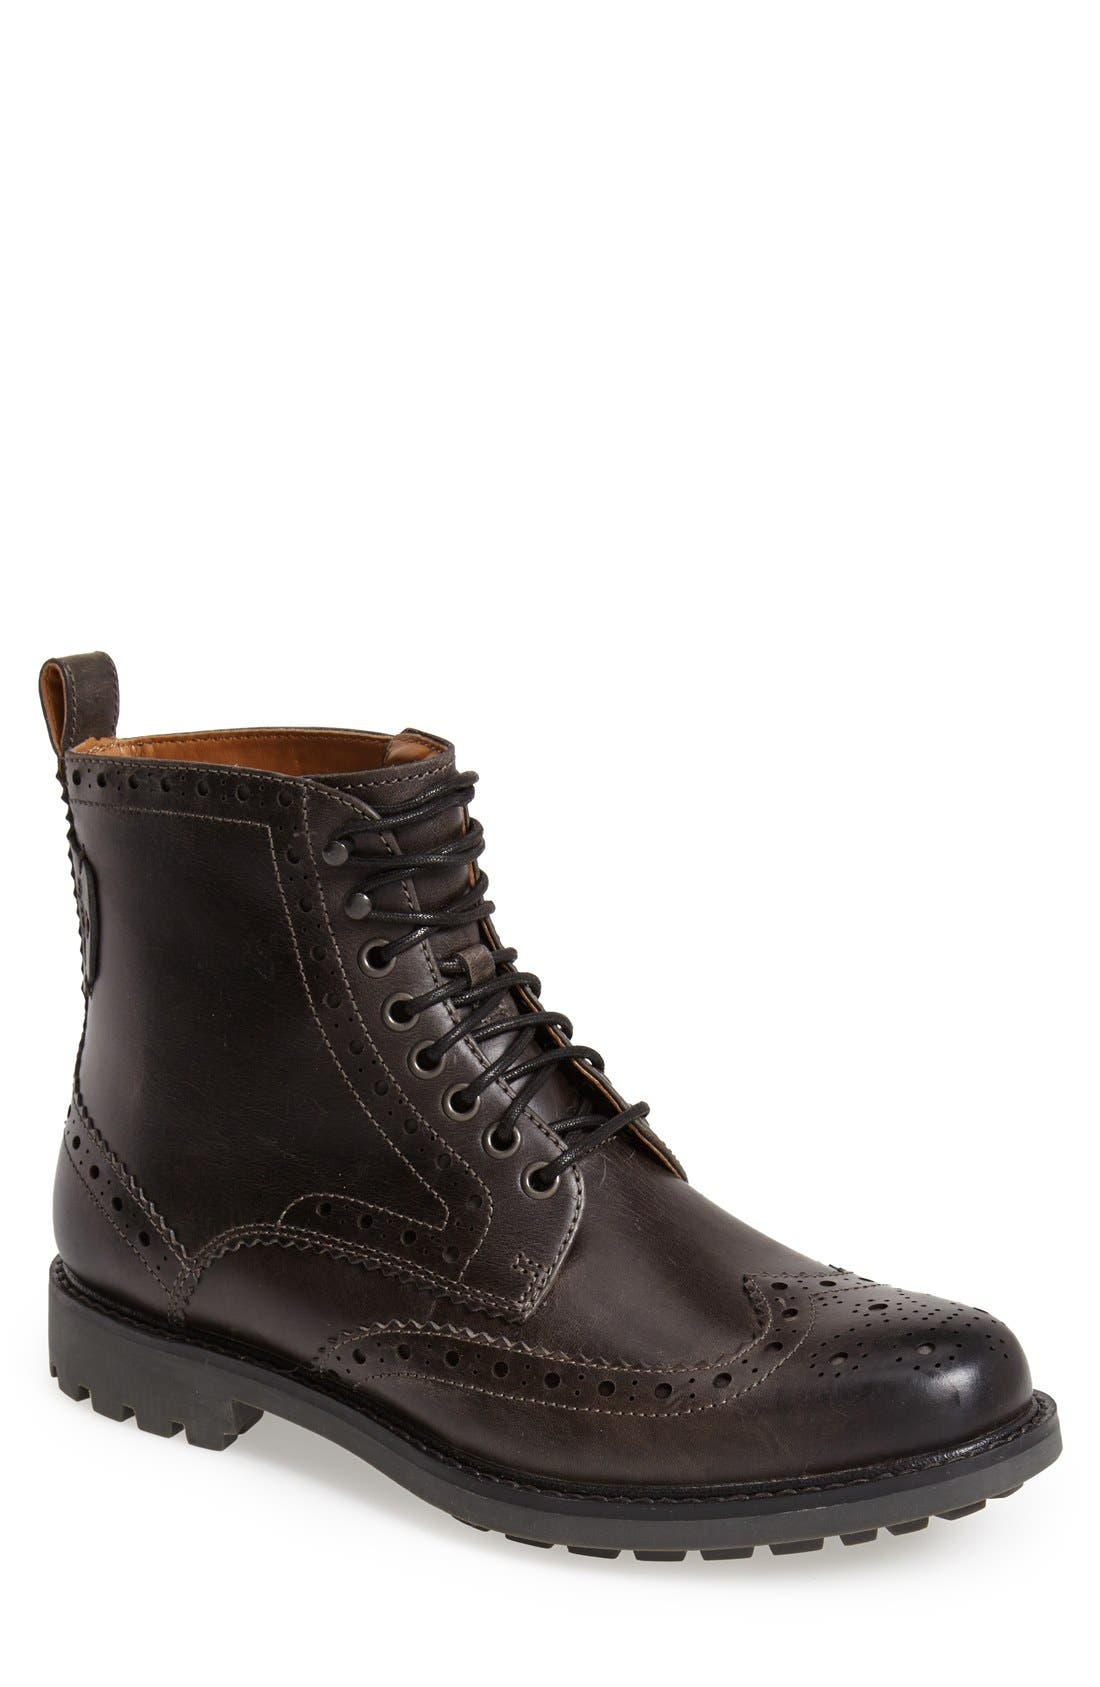 'Montacute Lord' Wingtip Boot,                             Main thumbnail 1, color,                             020